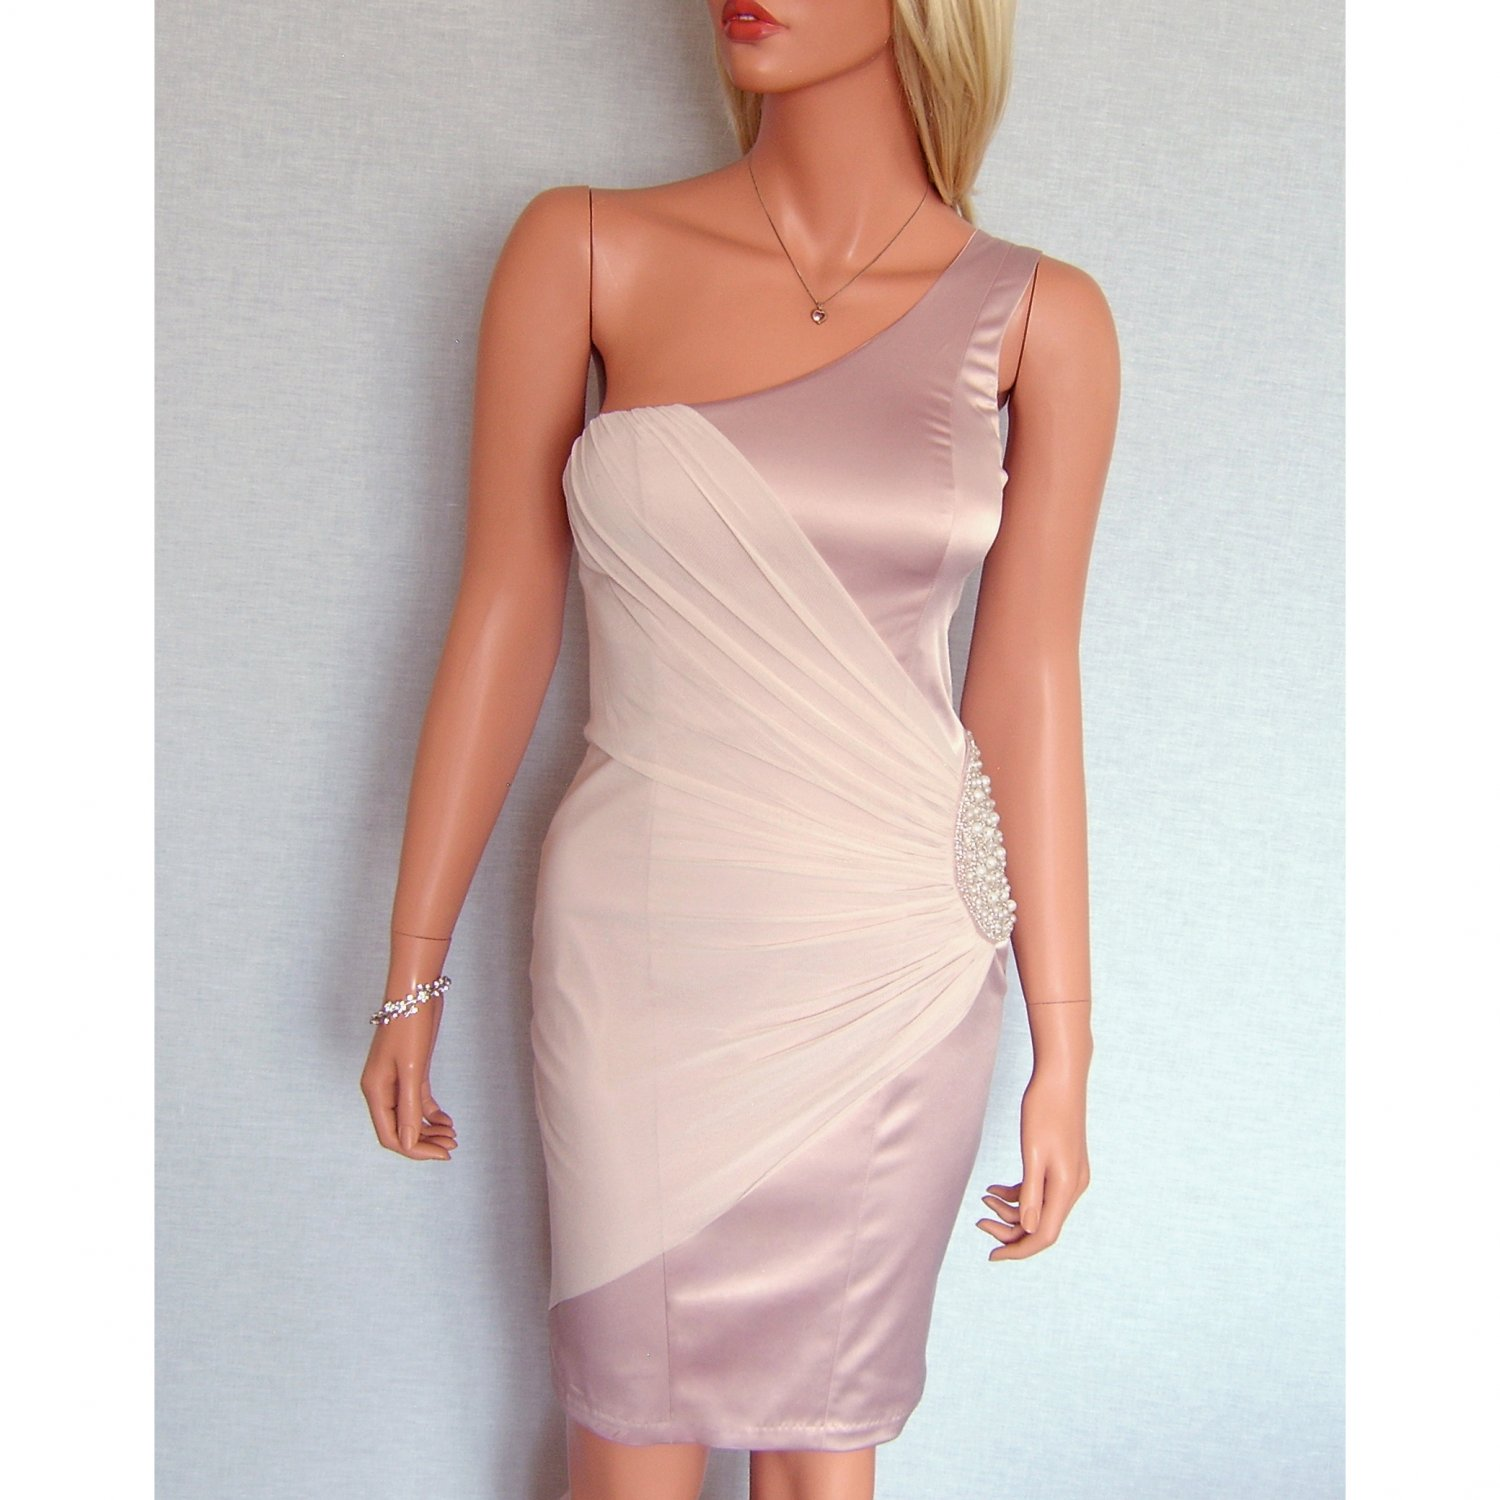 ELISE RYAN TOPSHOP PINK PEARL BEADED EVENING BODYCON MINI COCKTAIL CLUB PARTY PROM DRESS UK 8, US 4